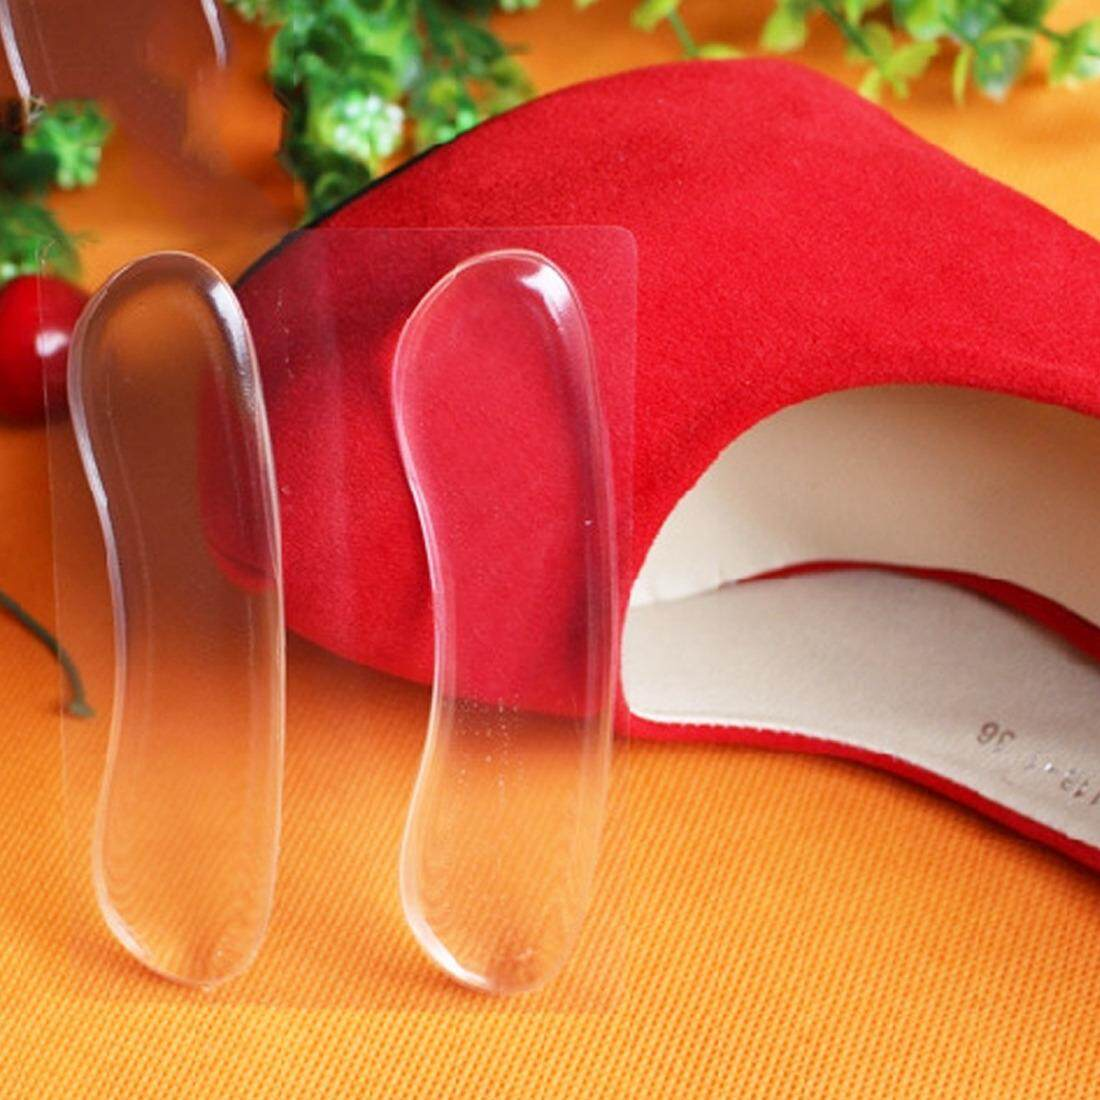 Invisible Silicone Shoe Insole Inserts Pad Cushion Foot Care Heel Grips Liner Sticker - intl